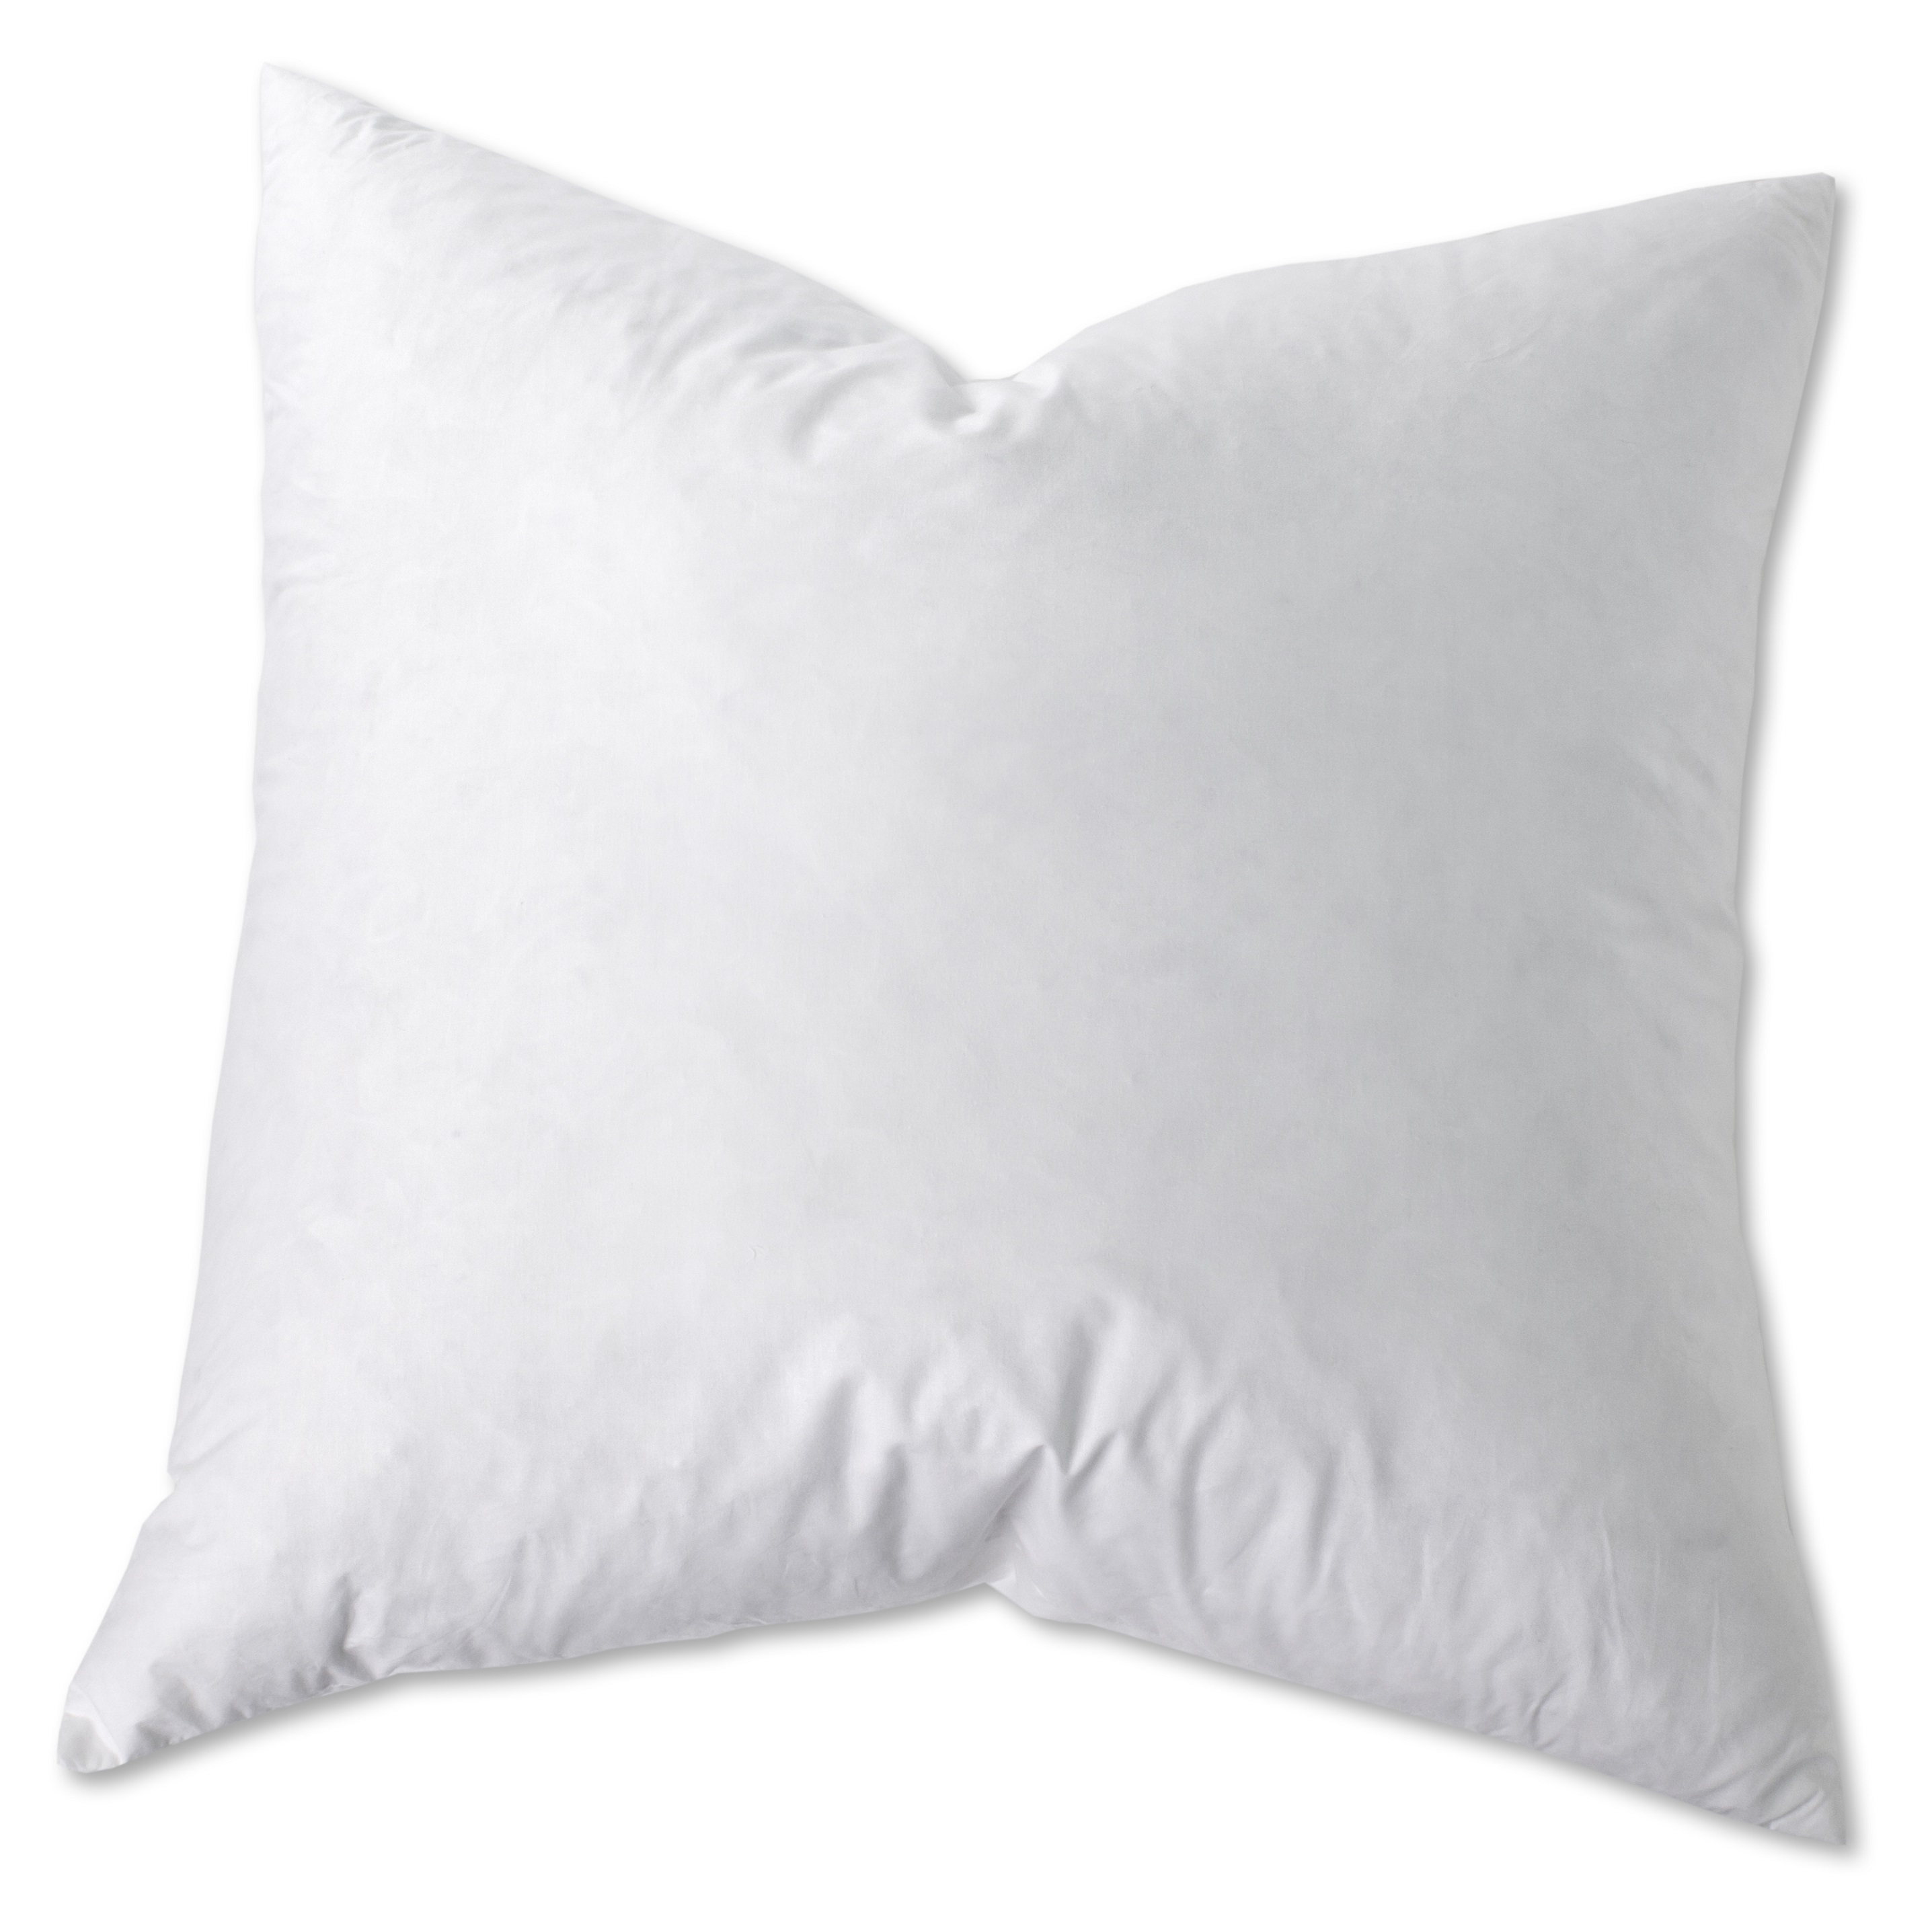 "Pillow Insert Goose 90/10 Feather/Down 20""x20"""